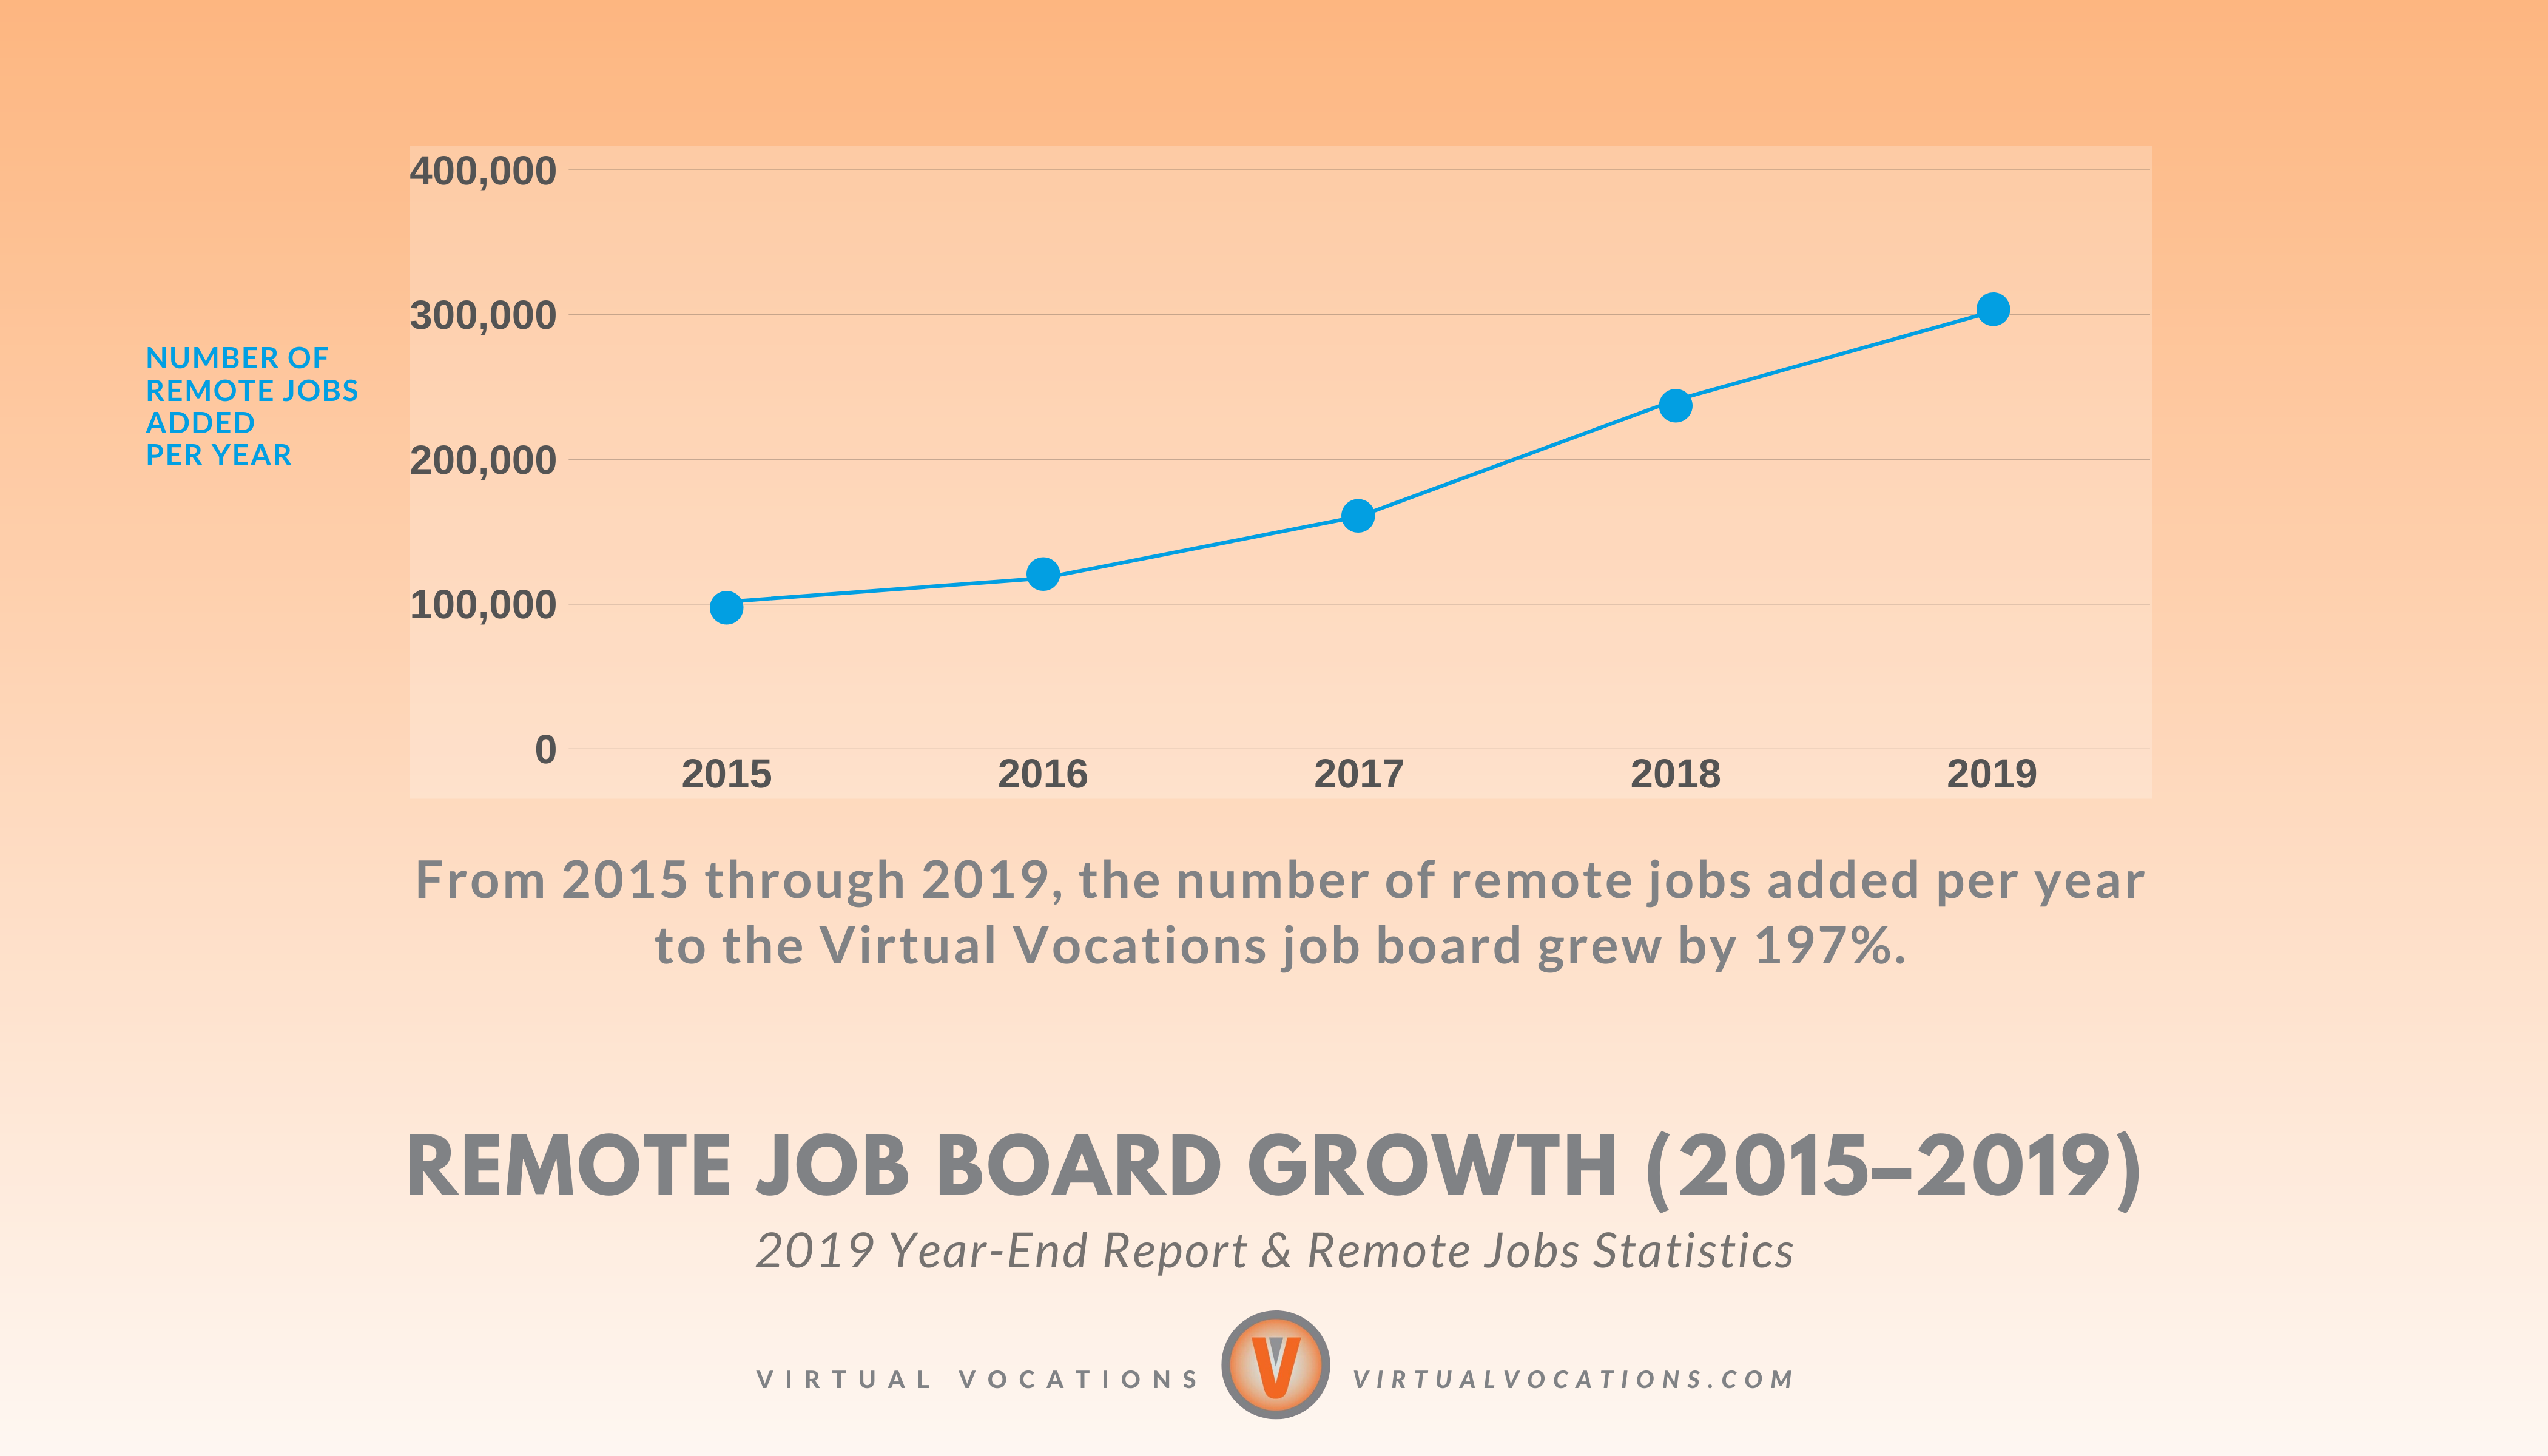 Virtual Vocations Remote Job Board Growth Chart 2015 - 2019 - 2019 Year-End Report and Remote Jobs Statistics